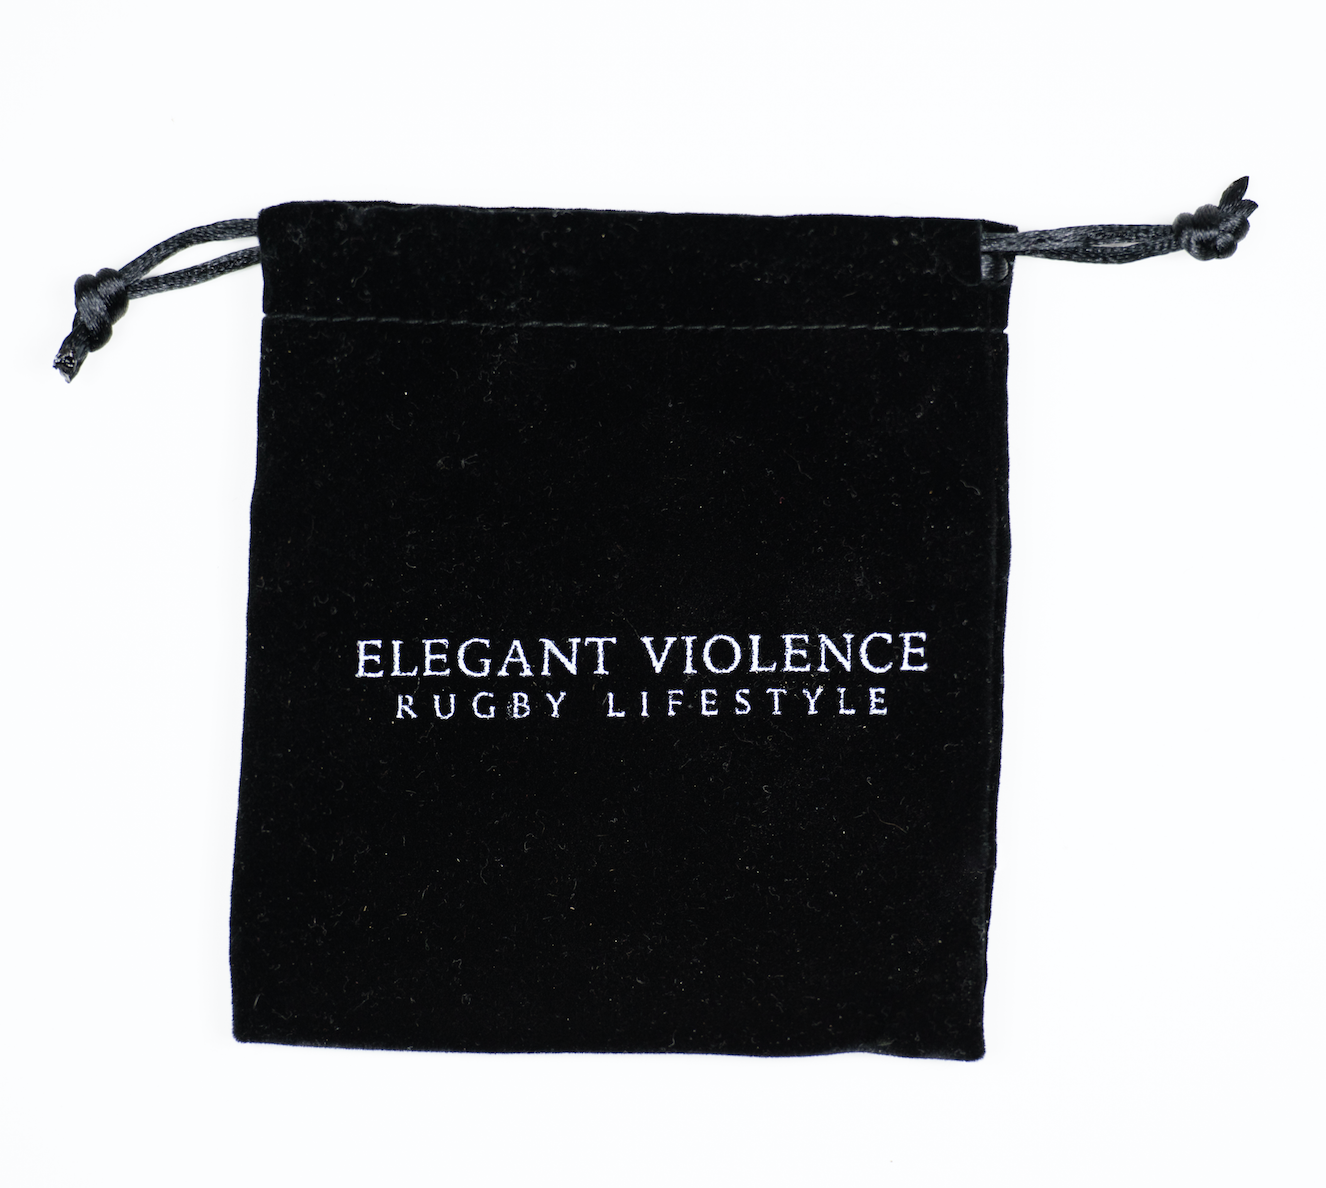 White Howlite w/ Gold Rugby Ball - Elegant Violence Rugby Lifestyle